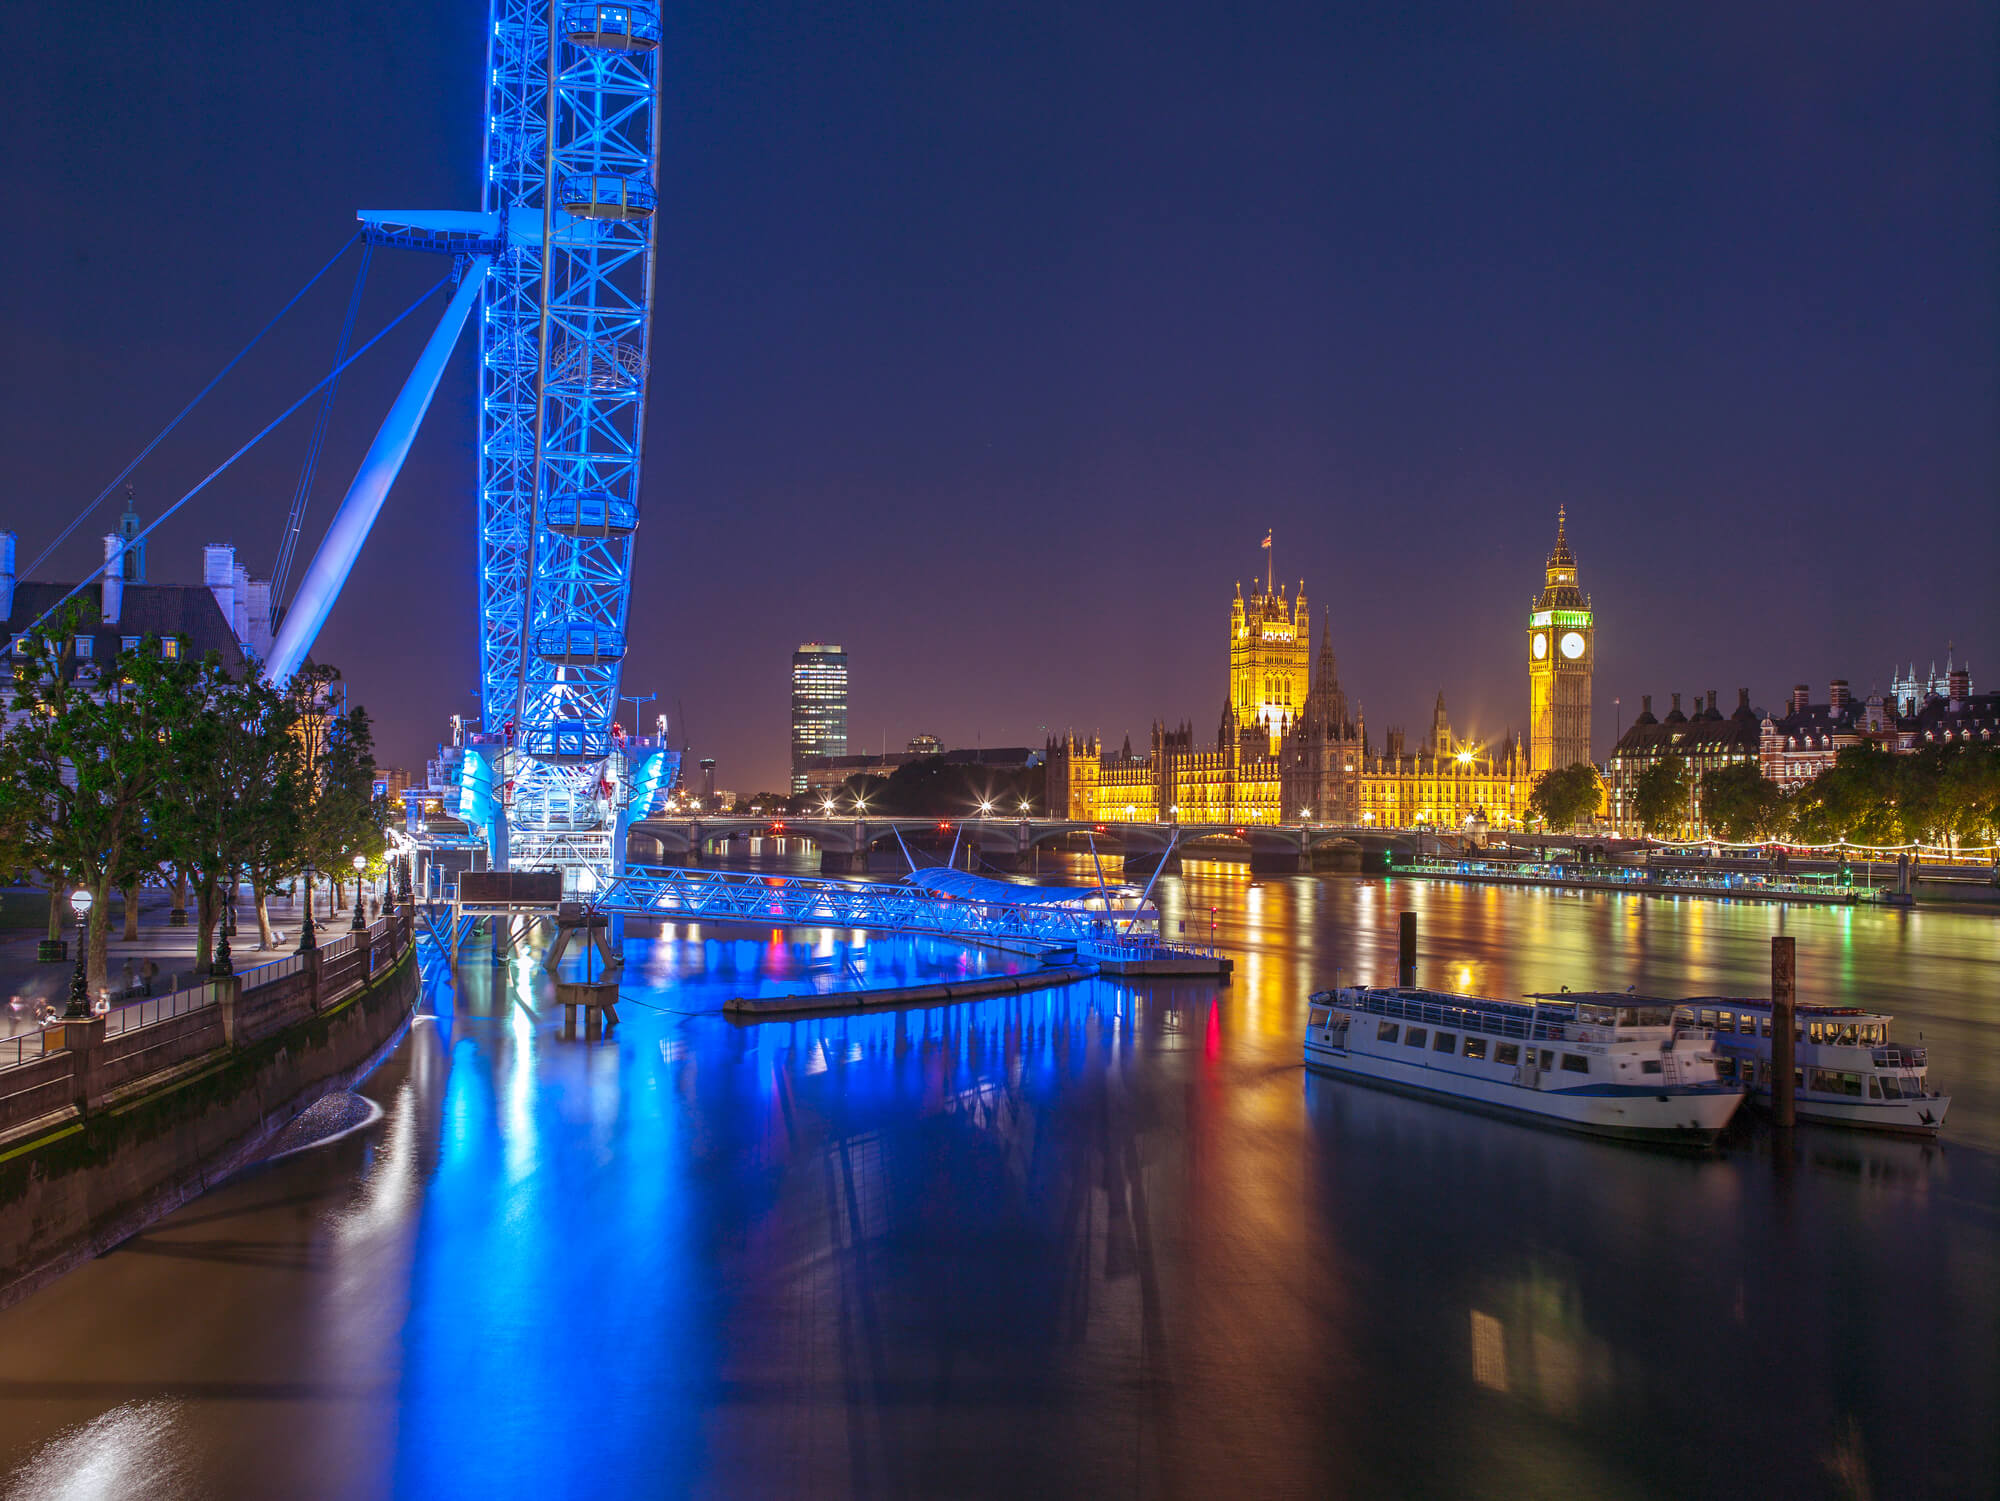 night lights at the london eye wall mural & night lights at the